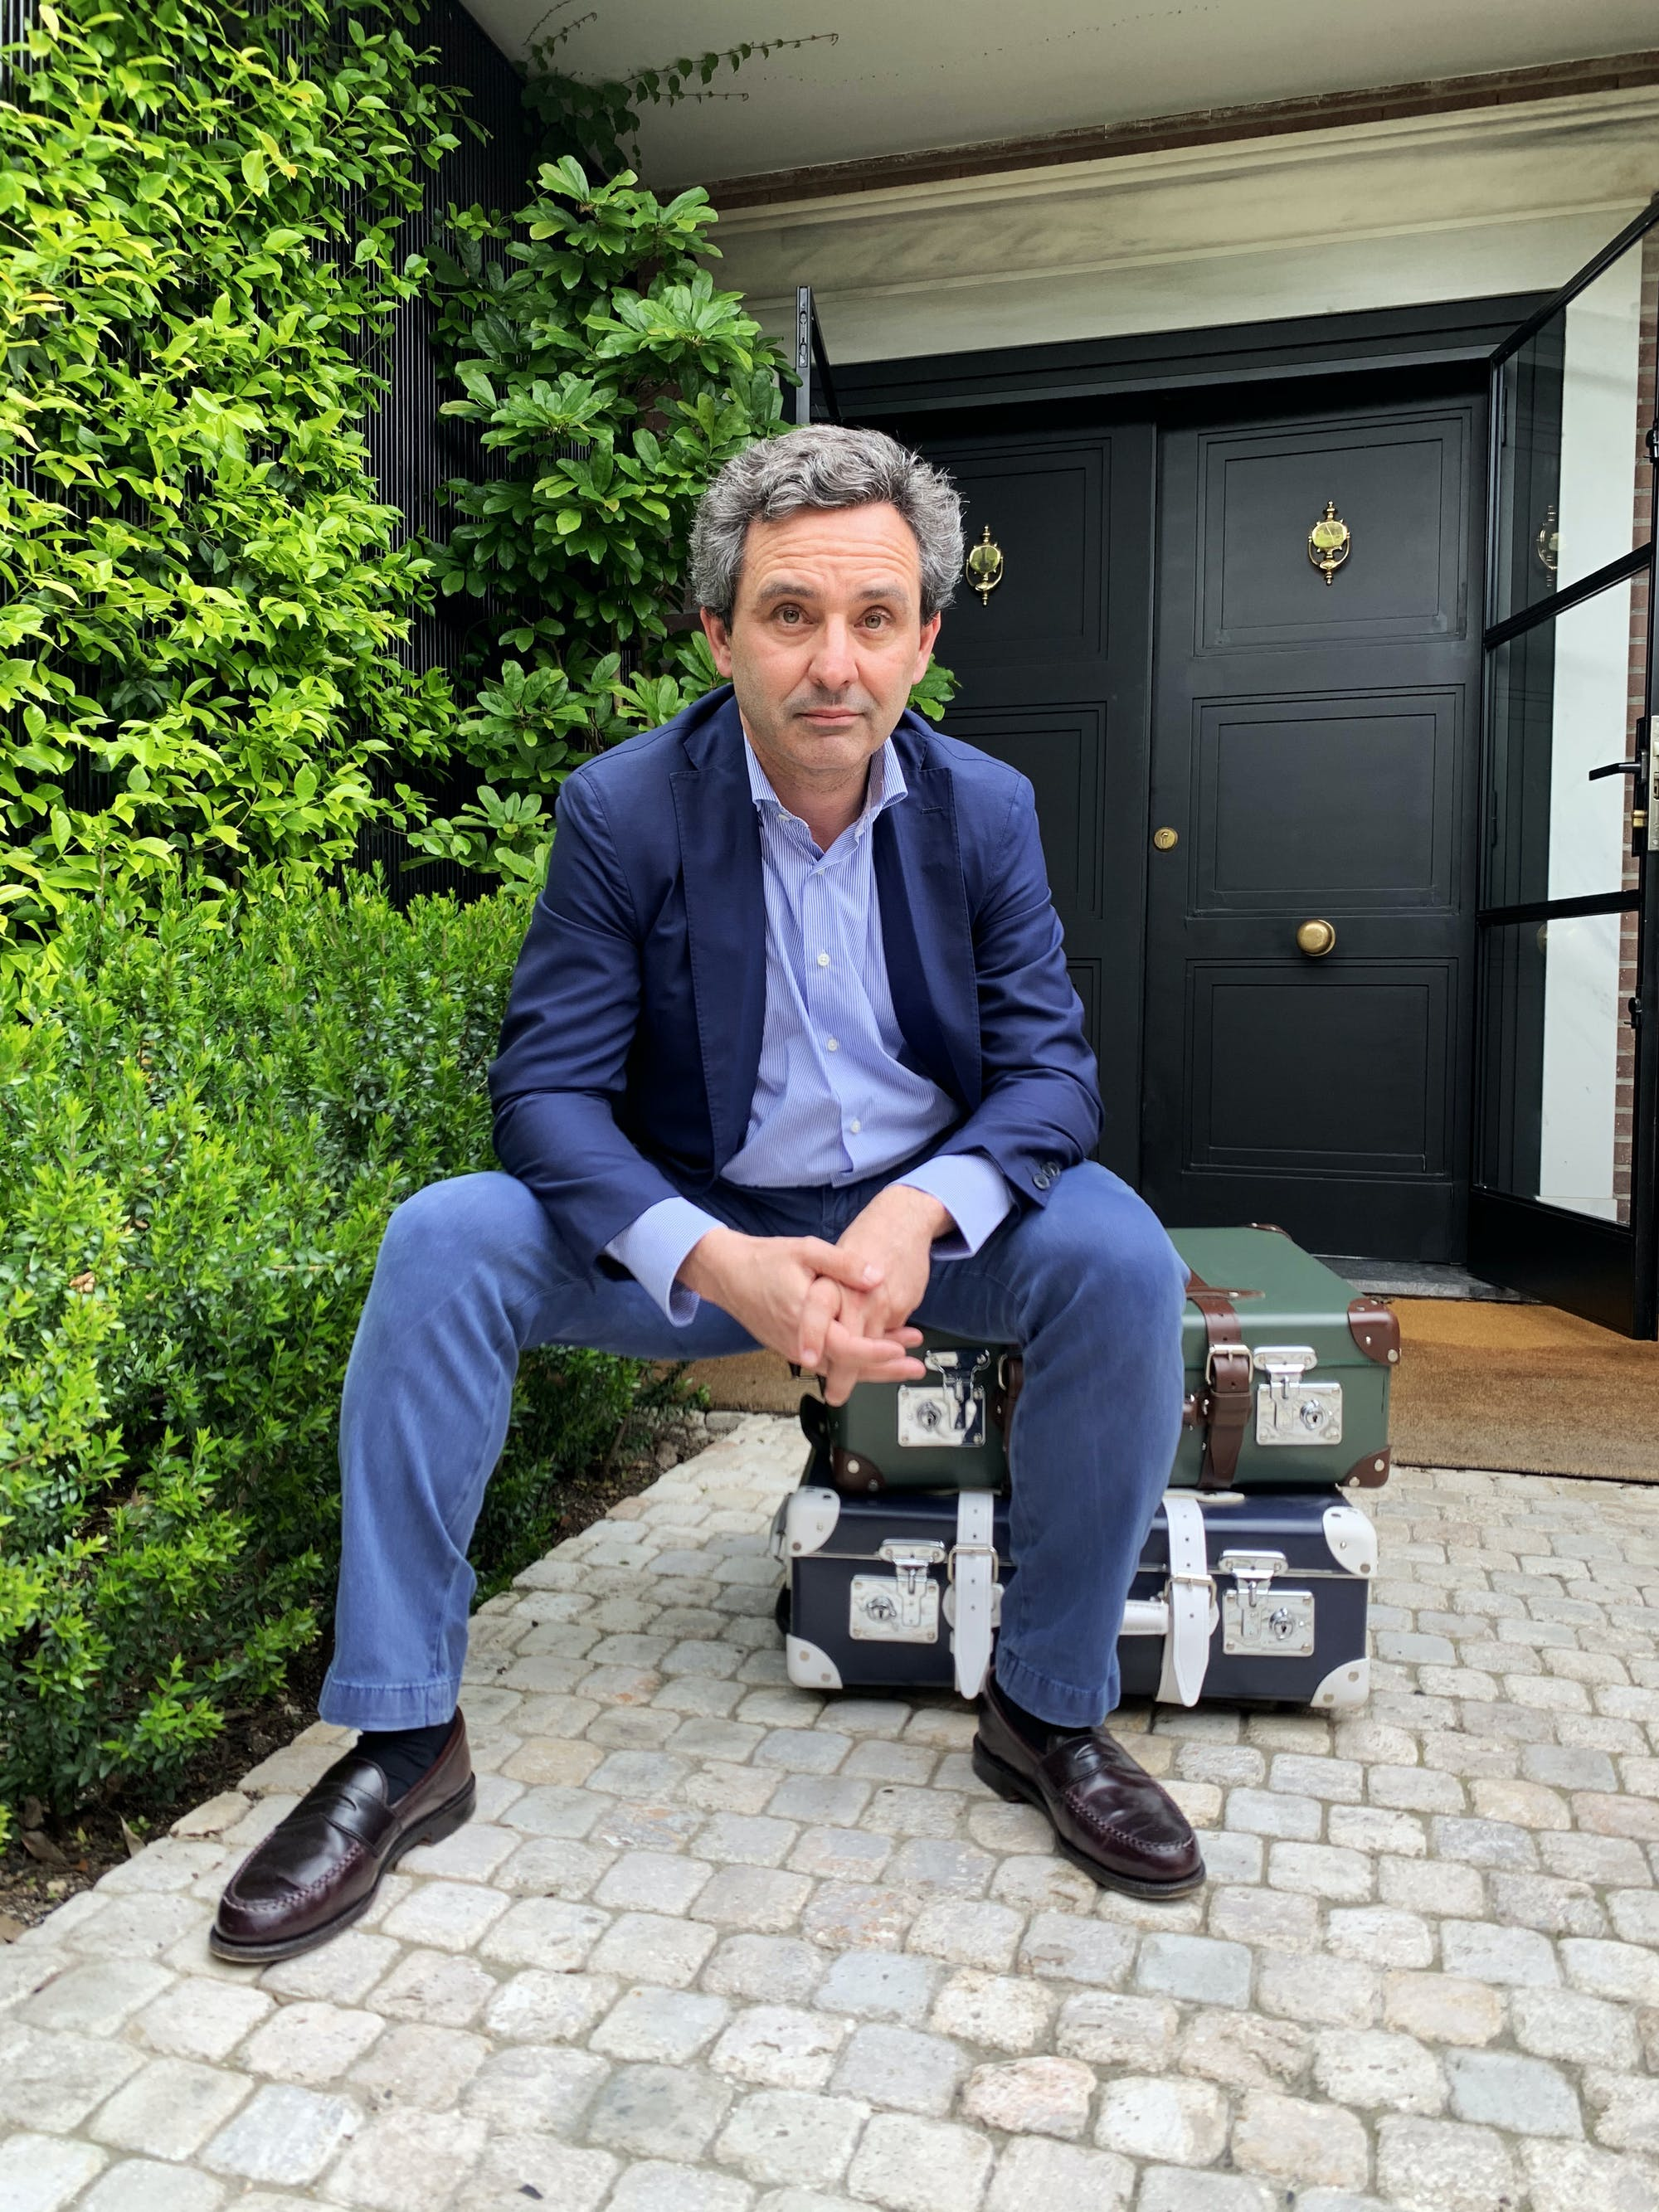 Grace Under Fire: Luxury leadership in troubled times  Globe-Trotter – an interview with the new Executive Chairman, Vicente Castellano